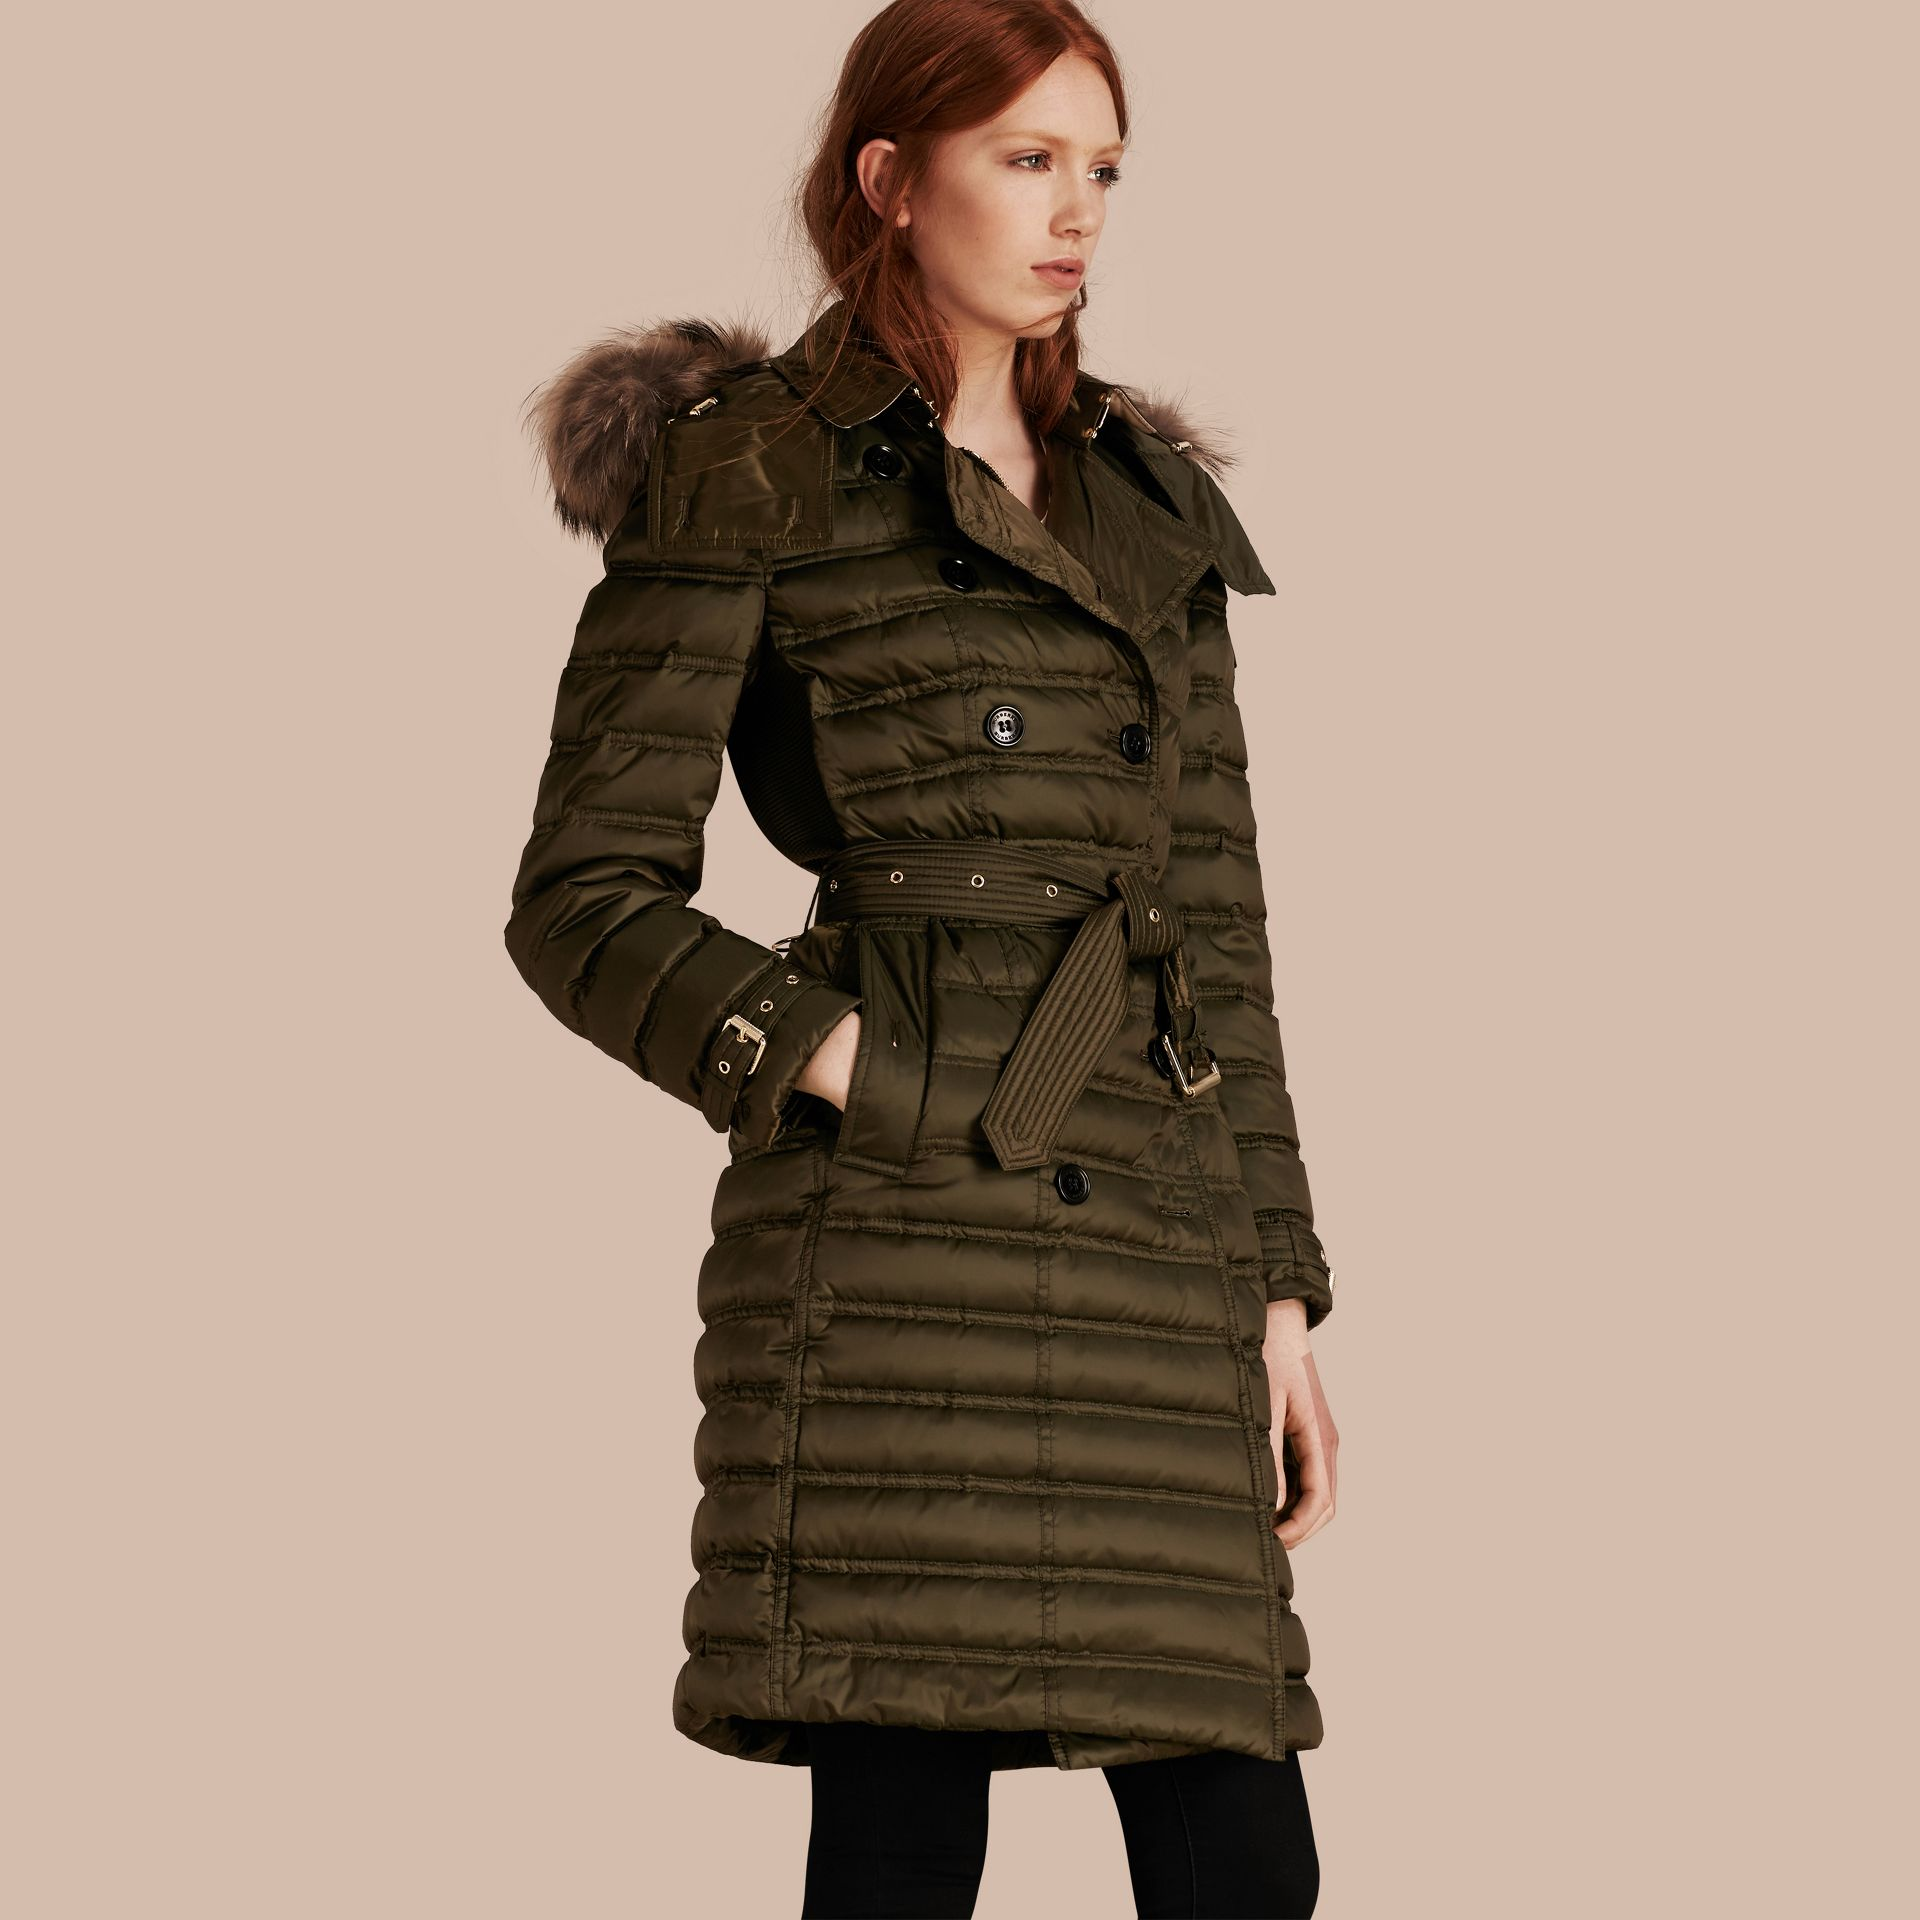 Dark olive Down-Filled Puffer Coat with Fur Trim Dark Olive - gallery image 1